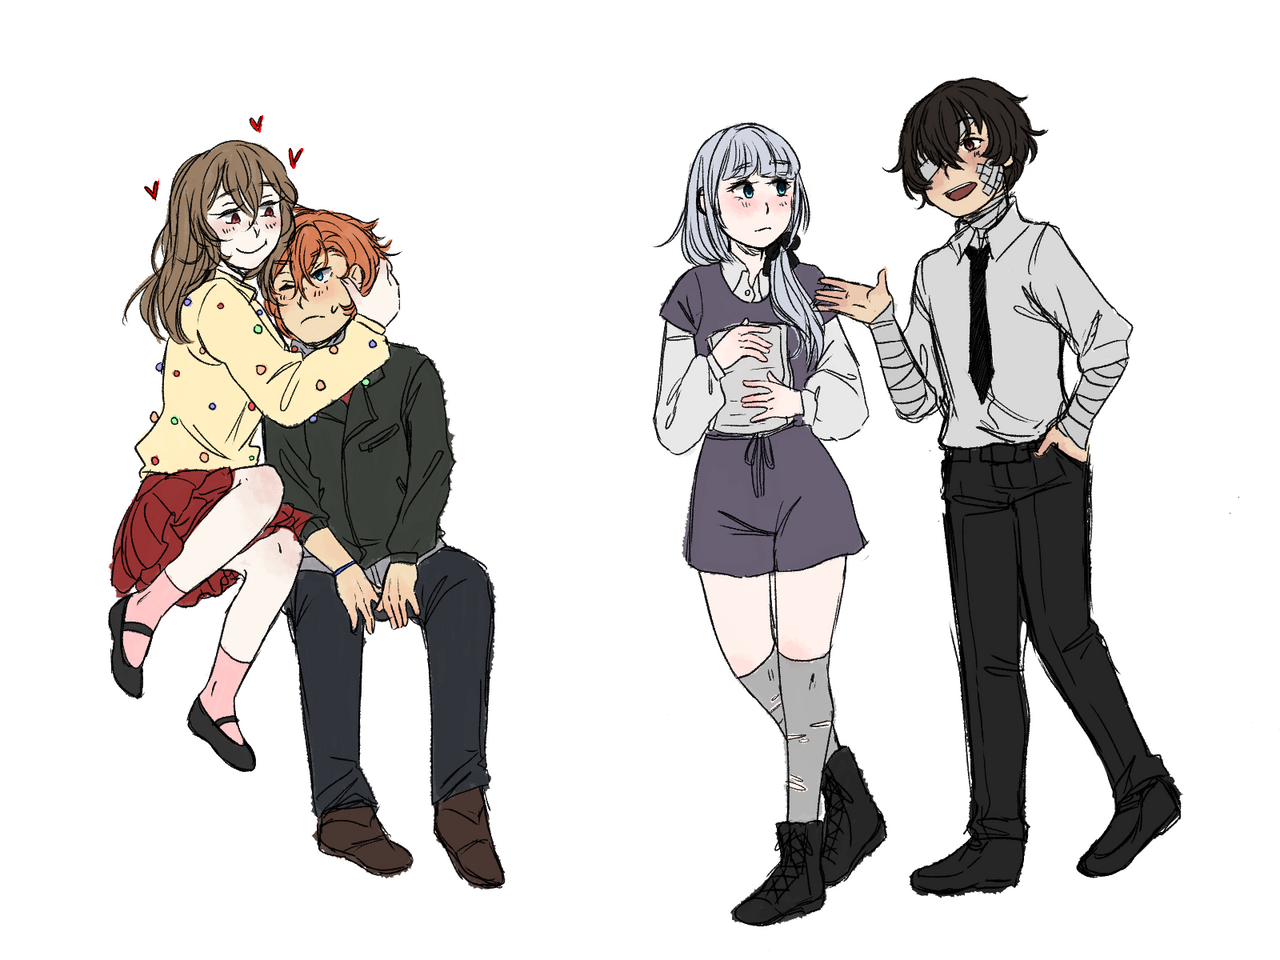 Bsd Dorky Teenagers By You May Call Me Meme On Deviantart